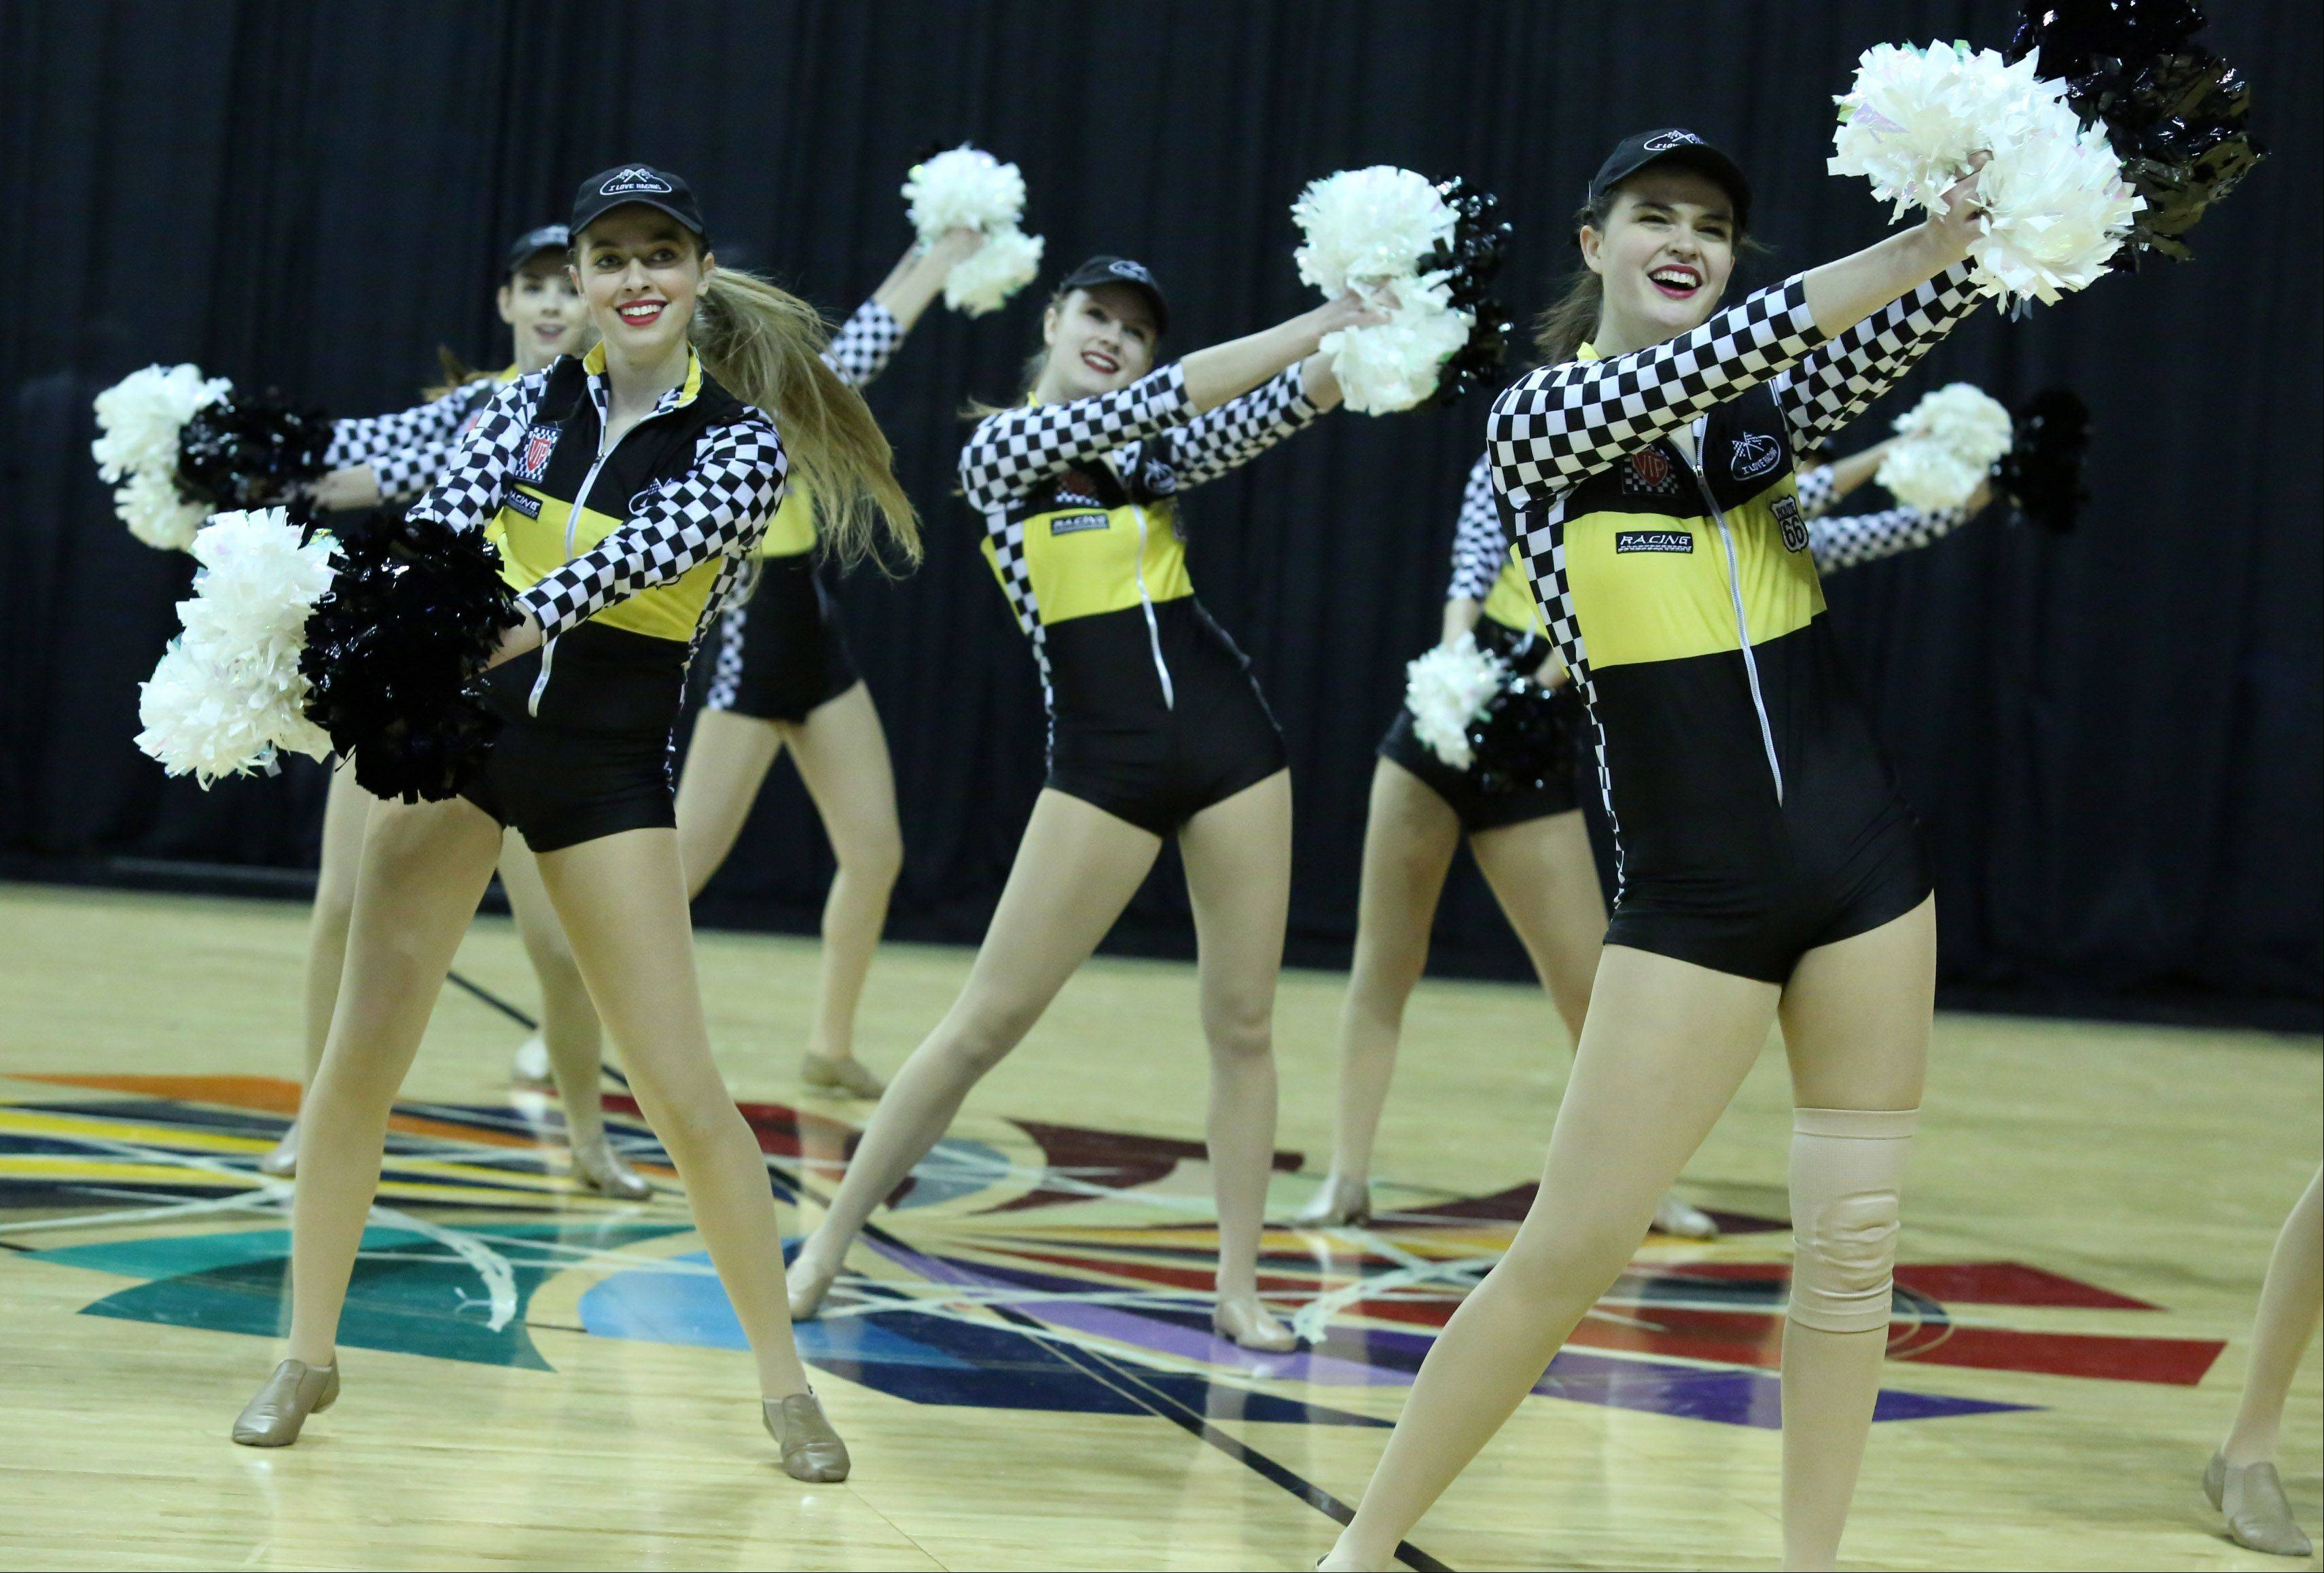 The Elk Grove High School dance team competes in the IHSA Winter Meltdown Cheerleading and Dance Competition at Sears Centre Arena on Saturday in Hoffman Estates.